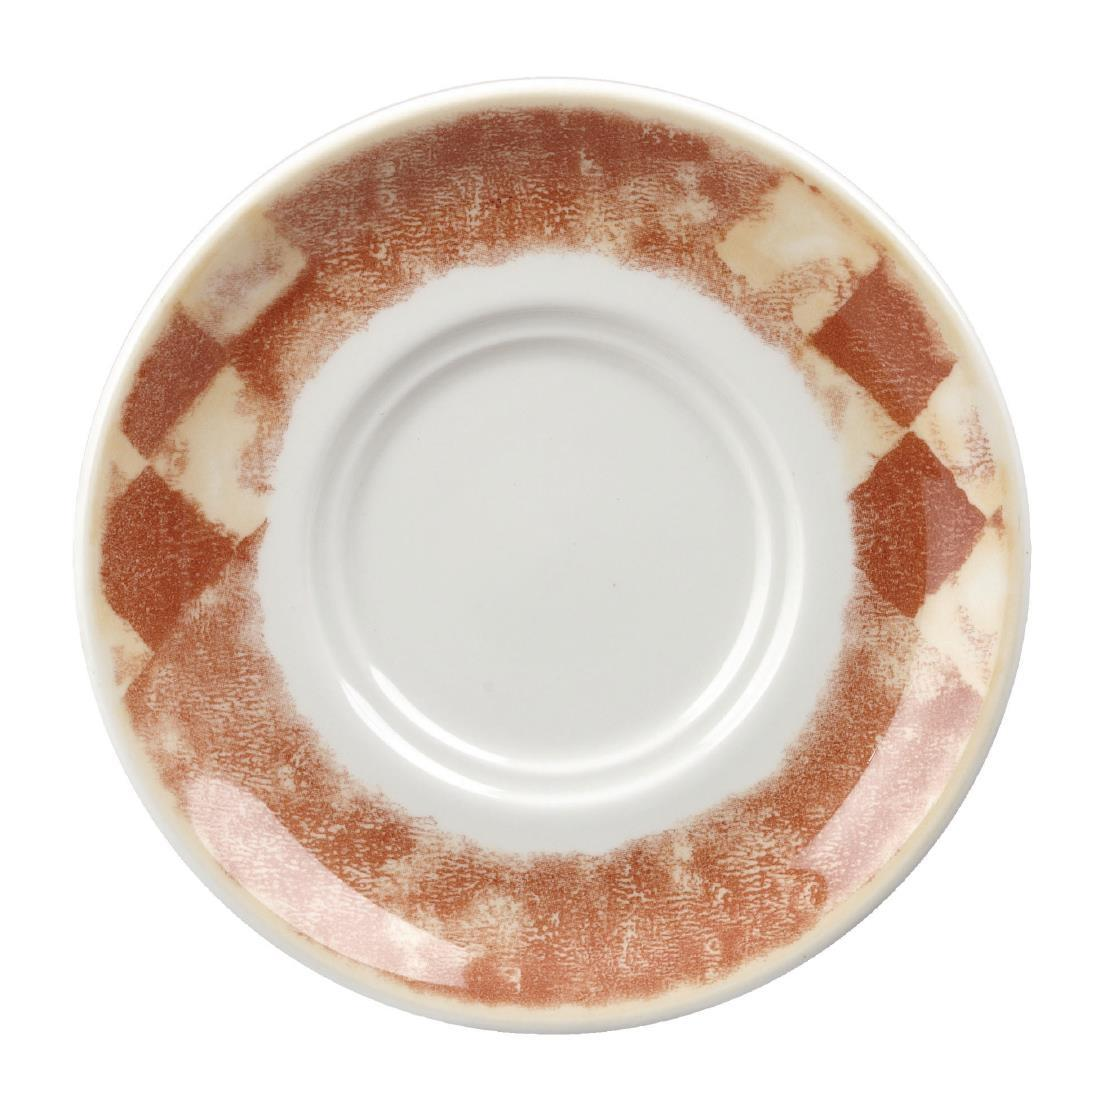 W063 - Tuscany Maple Saucer